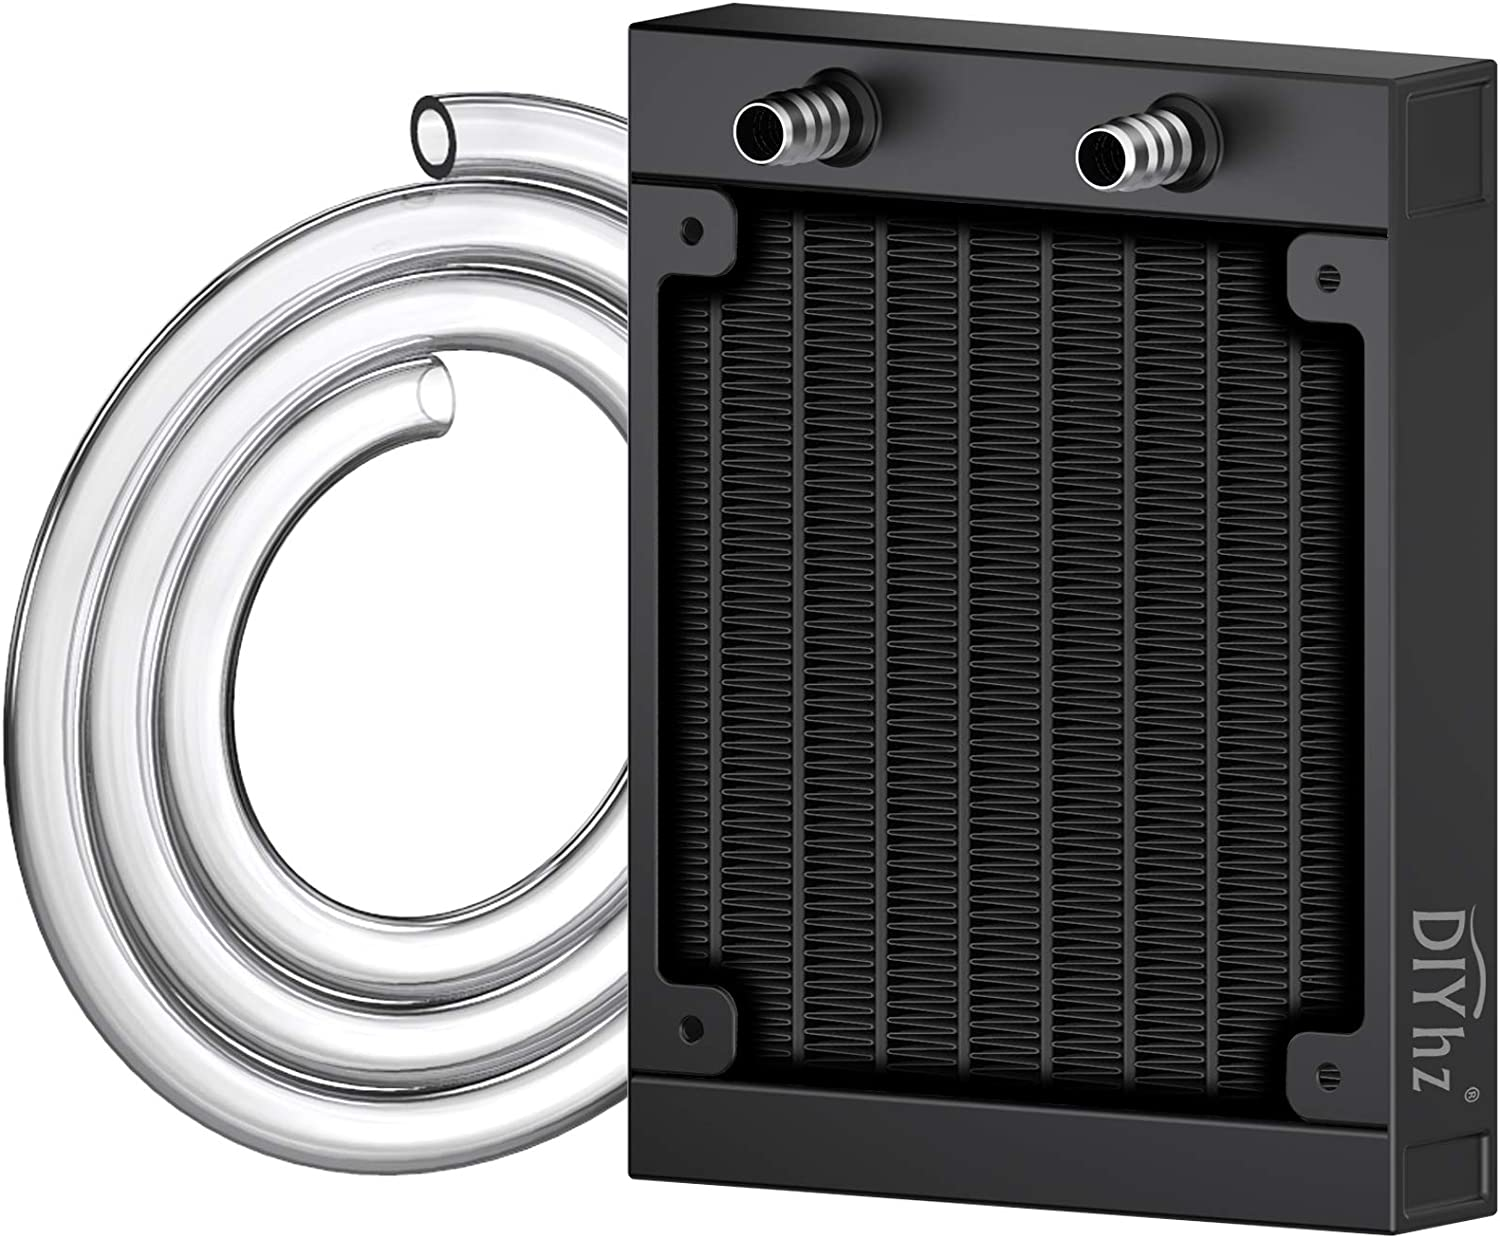 DIYhz Water Cooling Computer Radiator, 8 Pipe Aluminum Heat Exchanger Liquid Cooling Radiator Heat Sink 80mm for CPU PC Laser Water Cool System DC12V Black